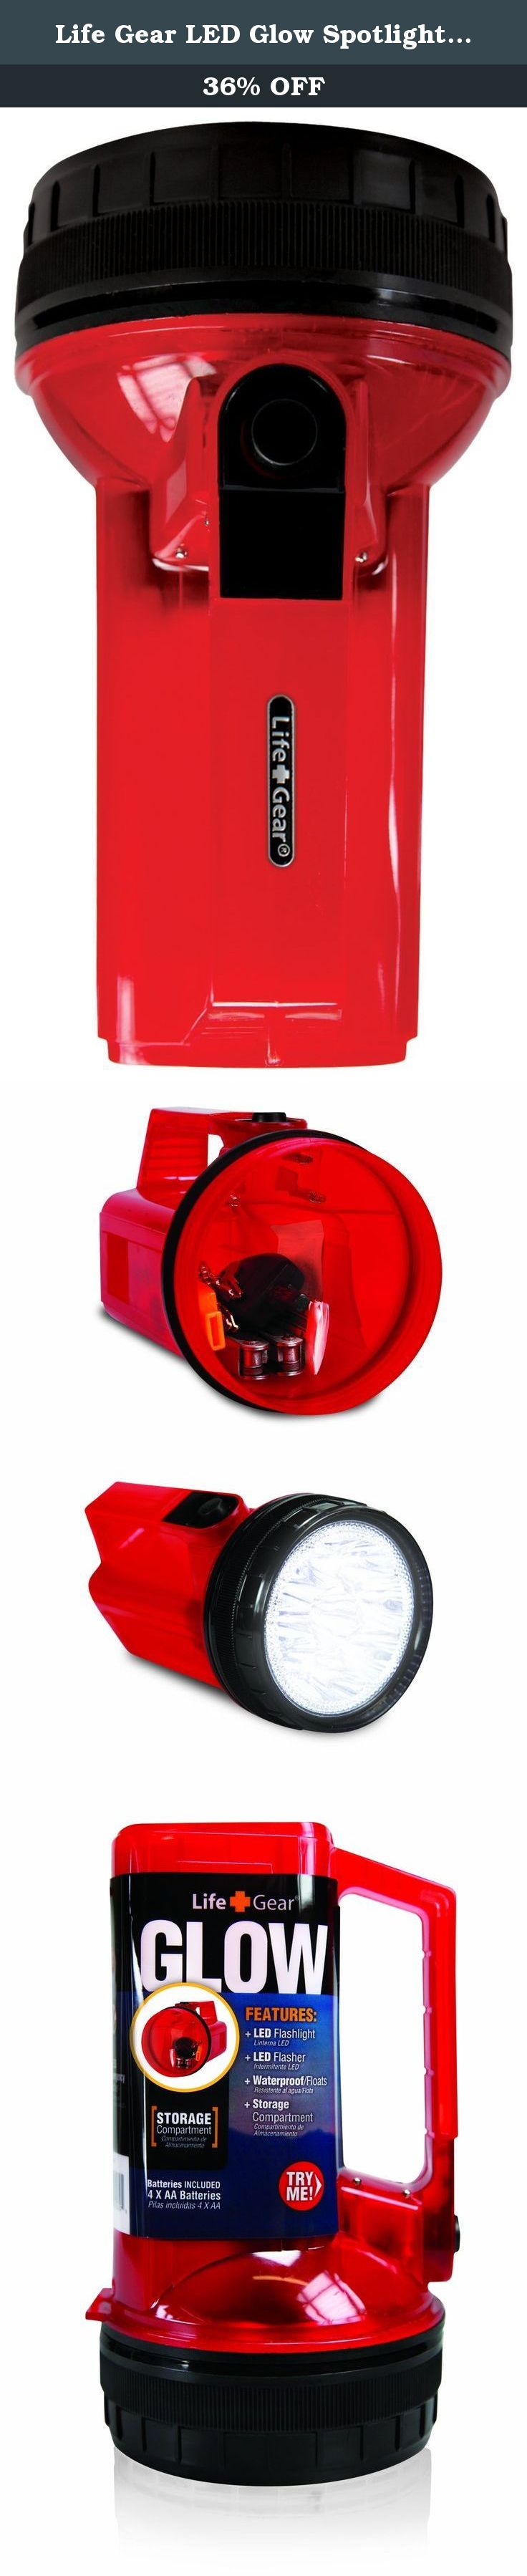 Life Gear LED Glow Spotlight with Storage Compartment, R